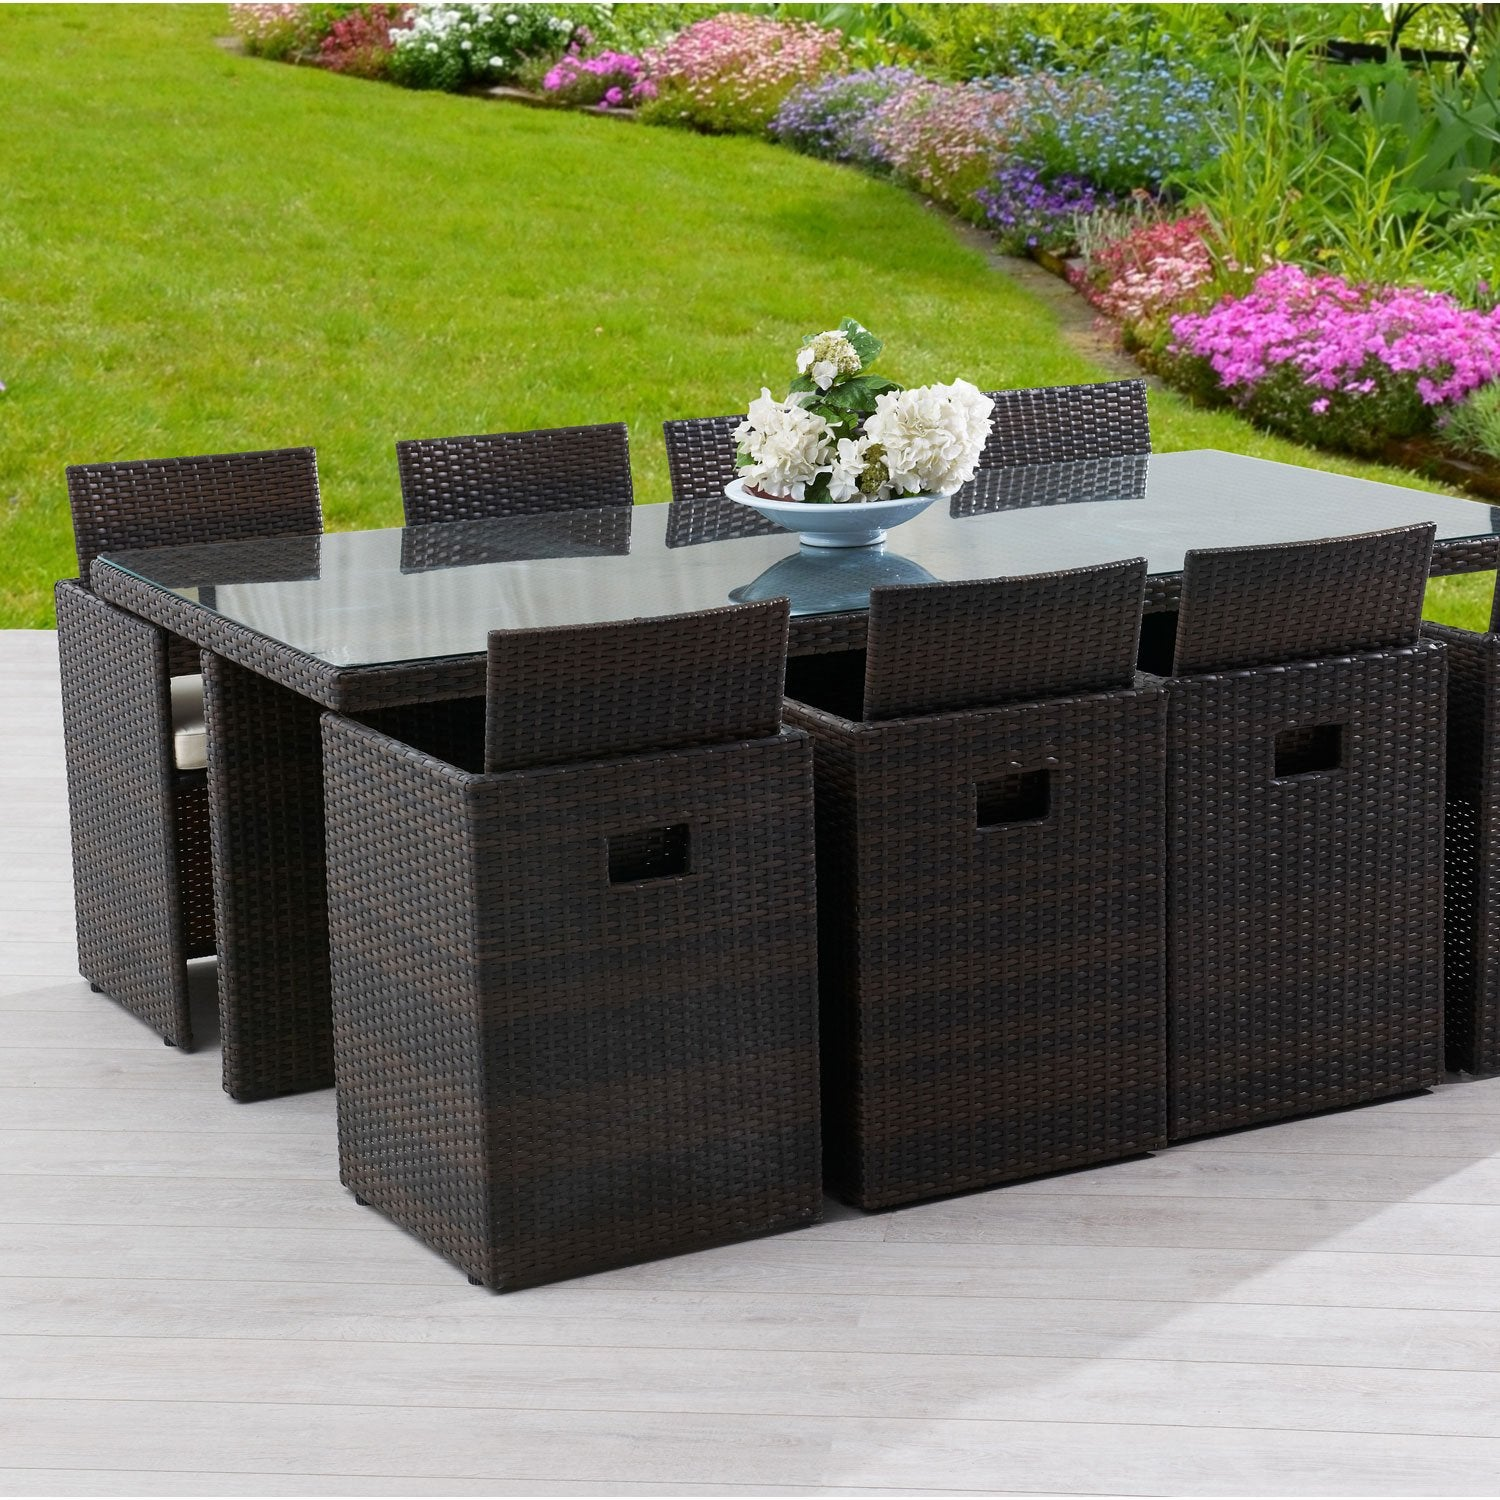 Salon de jardin encastrable r sine tress e marron 1 table - Salon de jardin fermob occasion ...